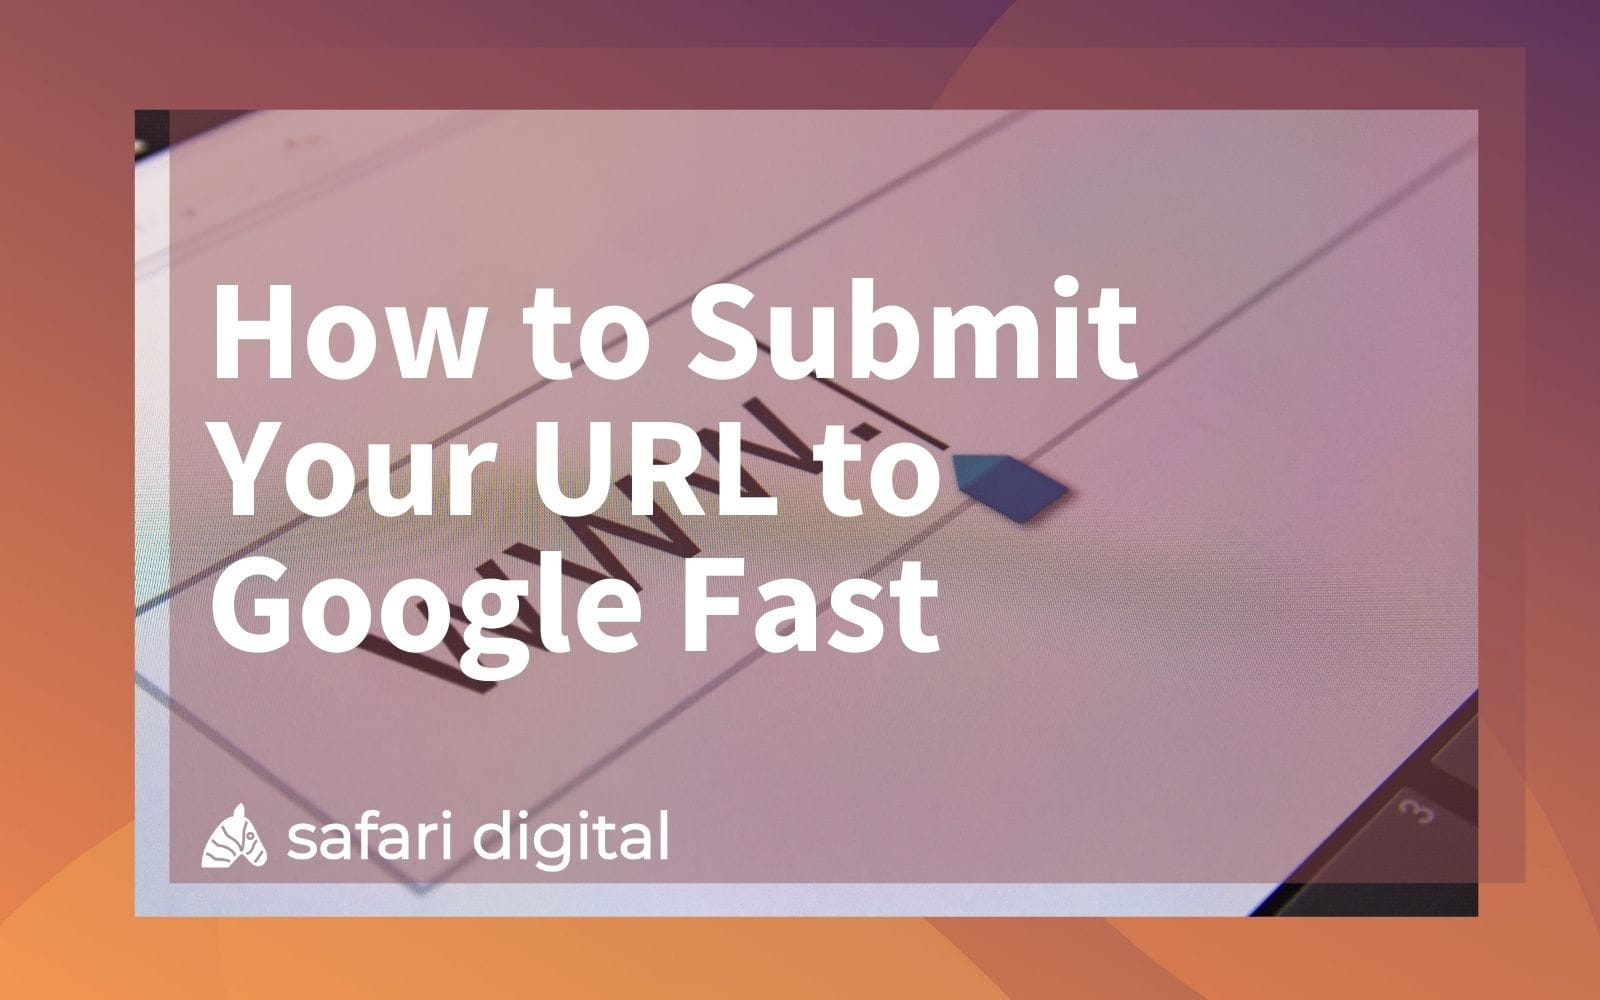 how to submit URL to Google cover image